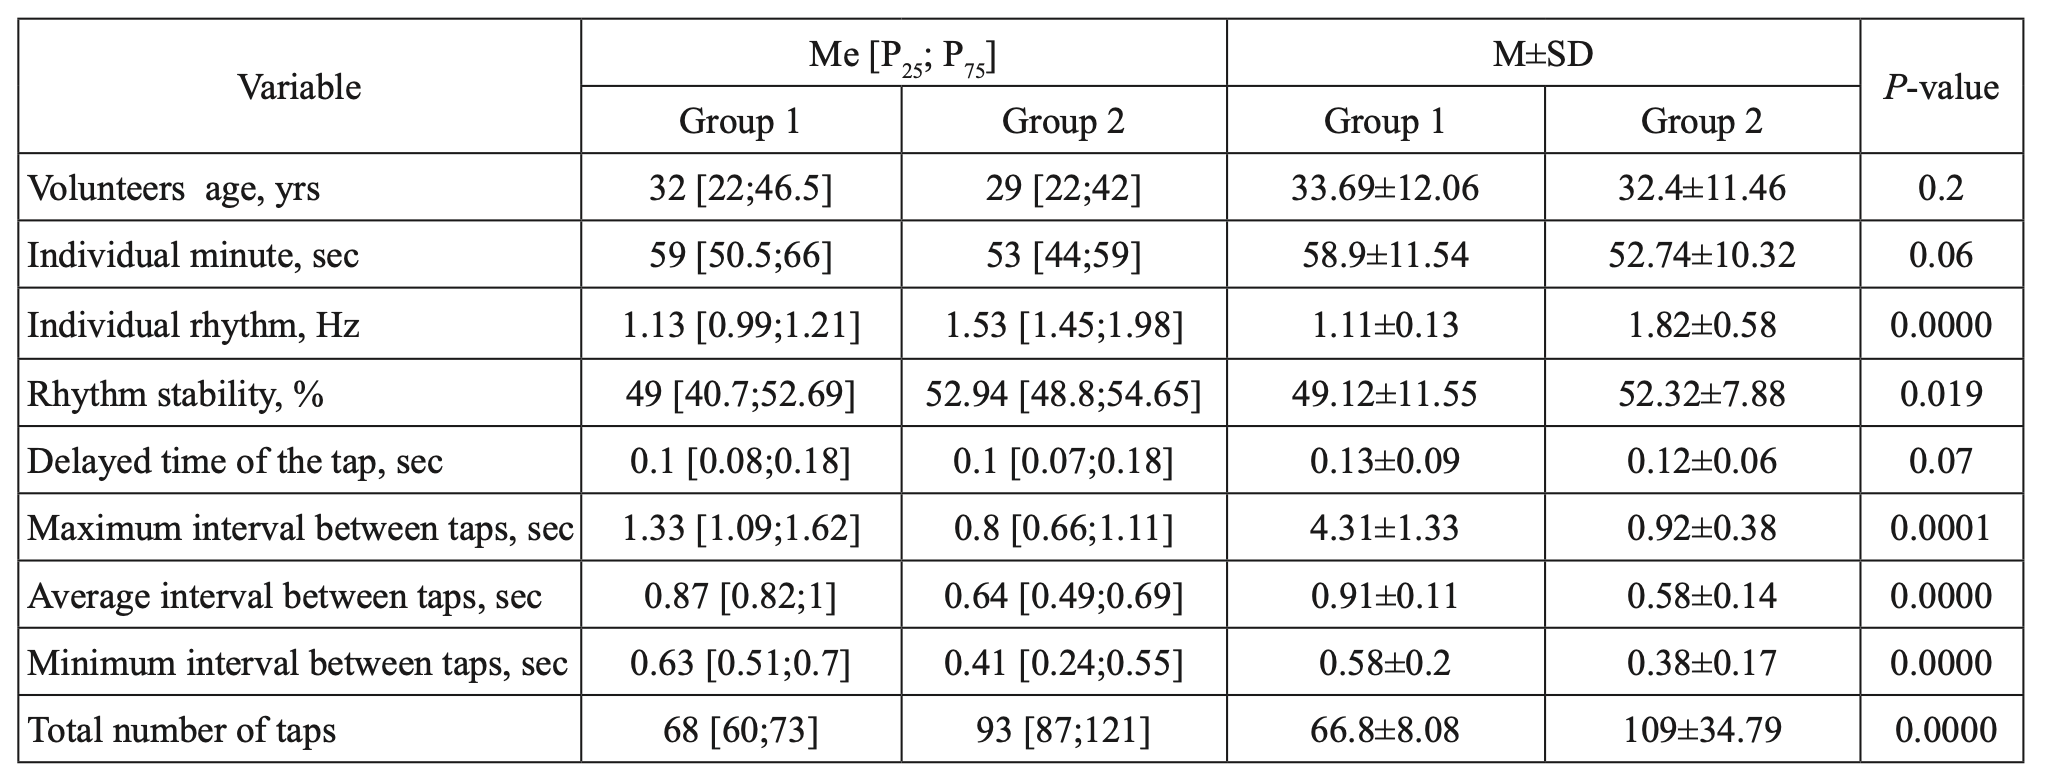 Table 3. Comparison of wrist tapping parameters in Groups 1 and 2